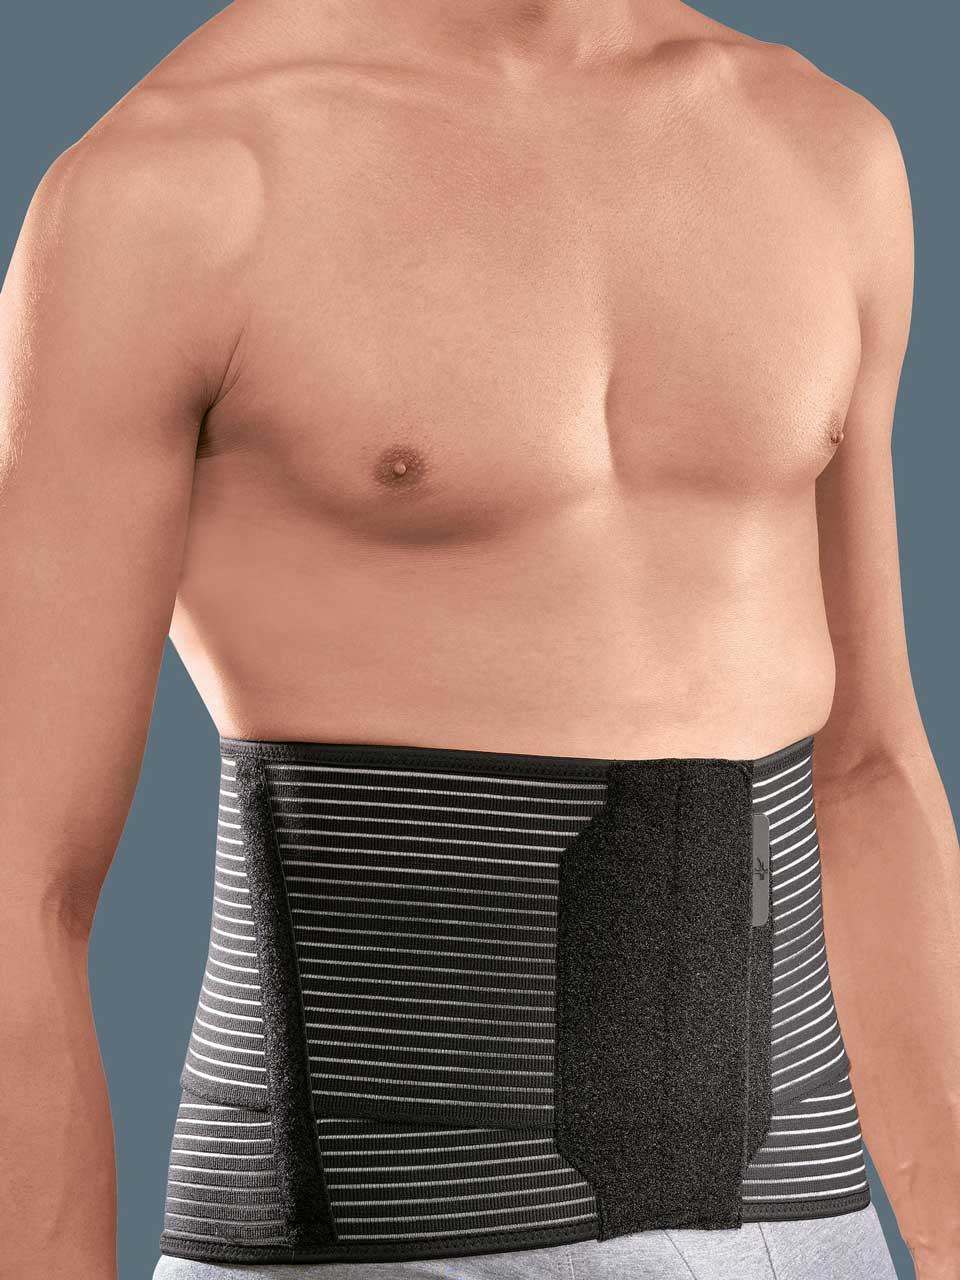 LINEAR70 - Low elastic orthosis with a  thermoformable pad to stabilize the lumbar rachis and relieve pressure